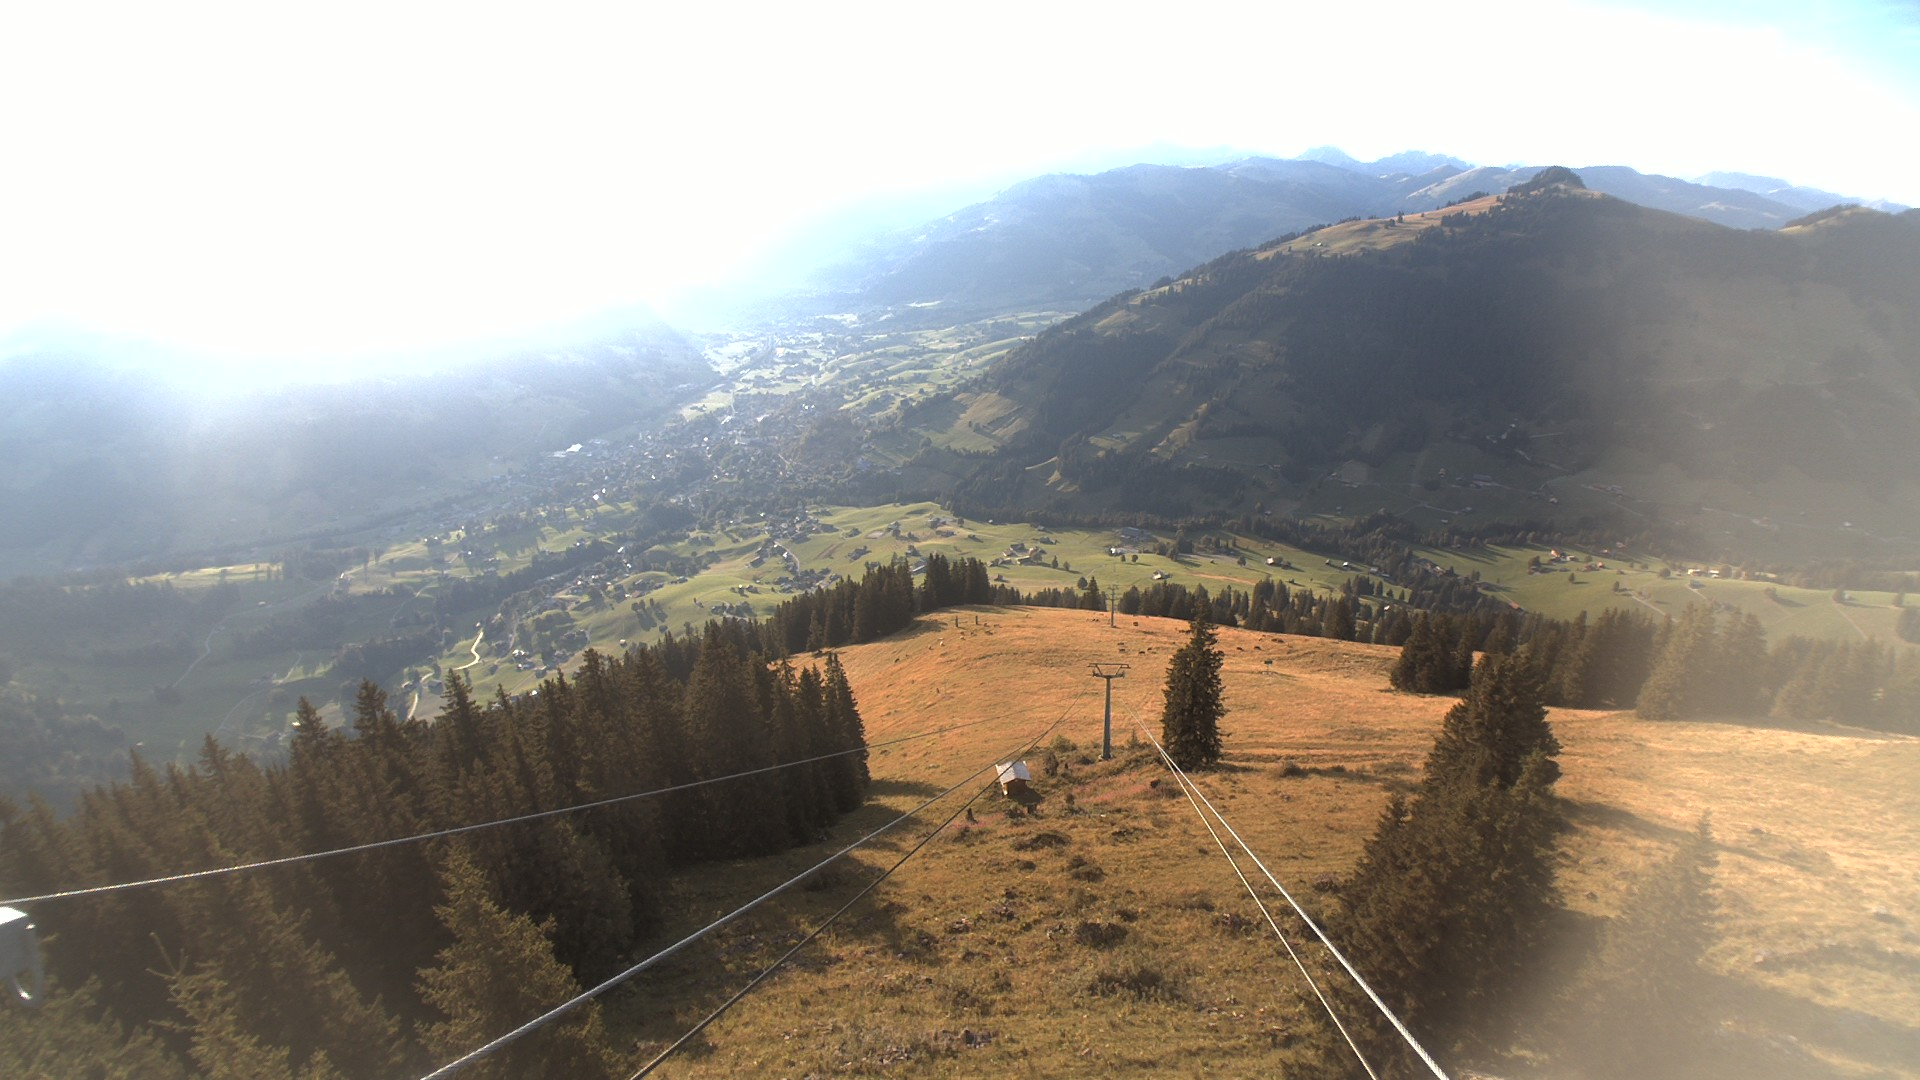 View over Gstaad from Wasserngrat top station